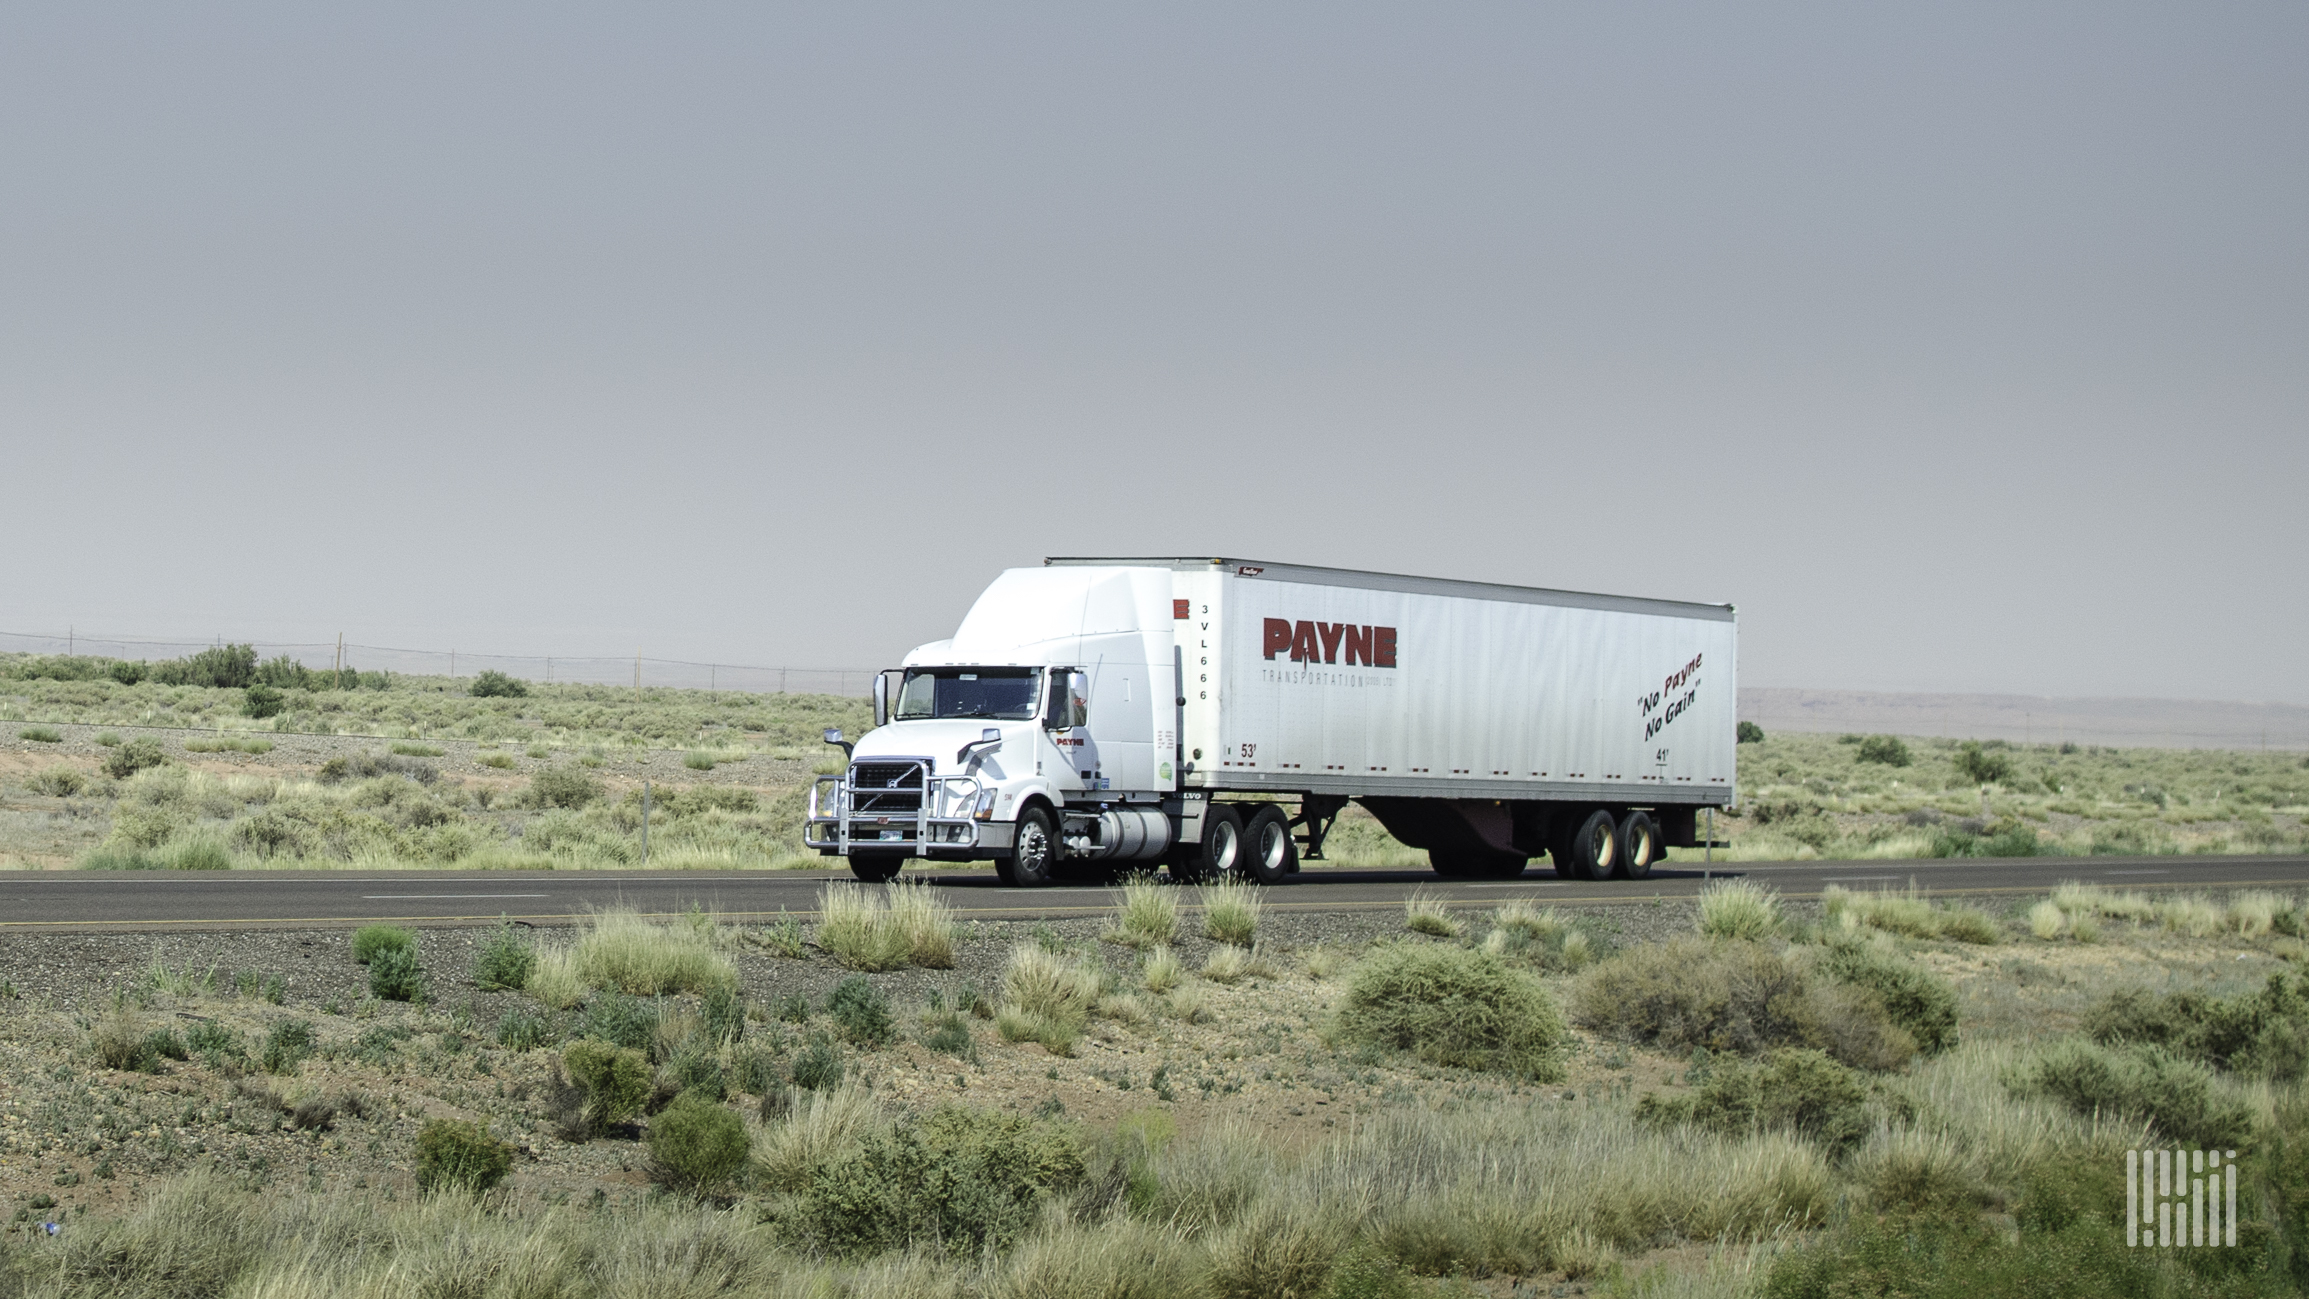 A tractor-trailer of Mullen Group trucking company Payne viewed from the side of a road.